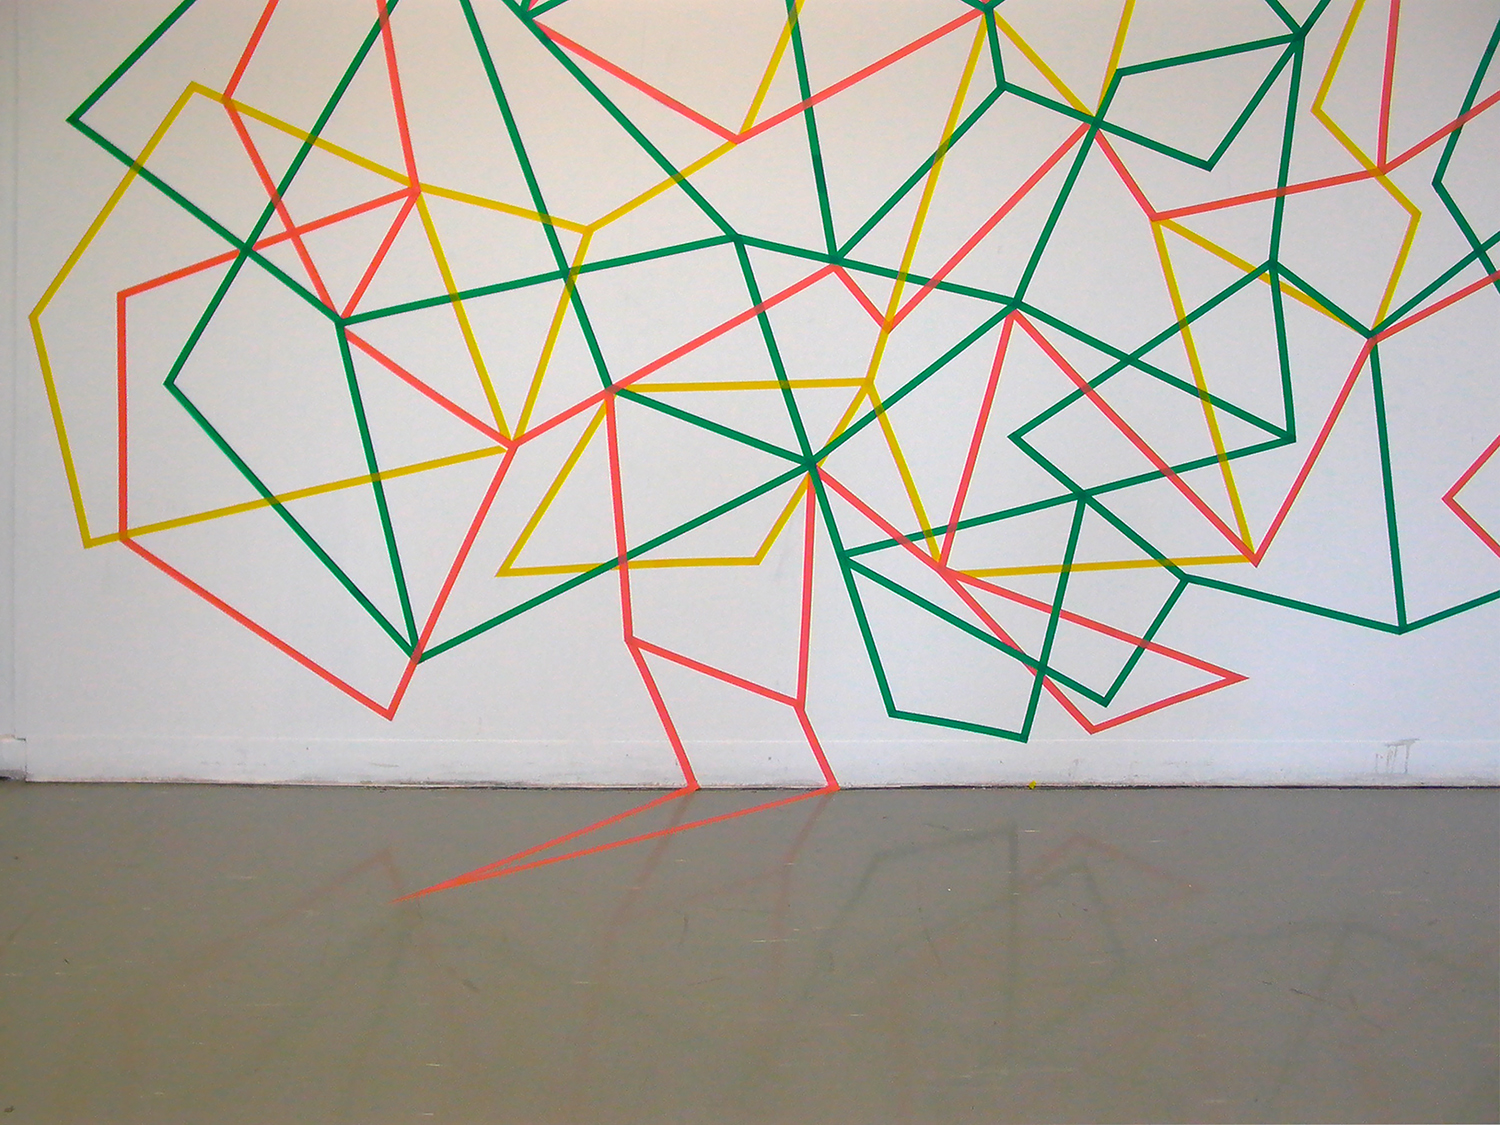 Undoing,  2009. Detail.  Electrical tape. 6m x 2.5m.